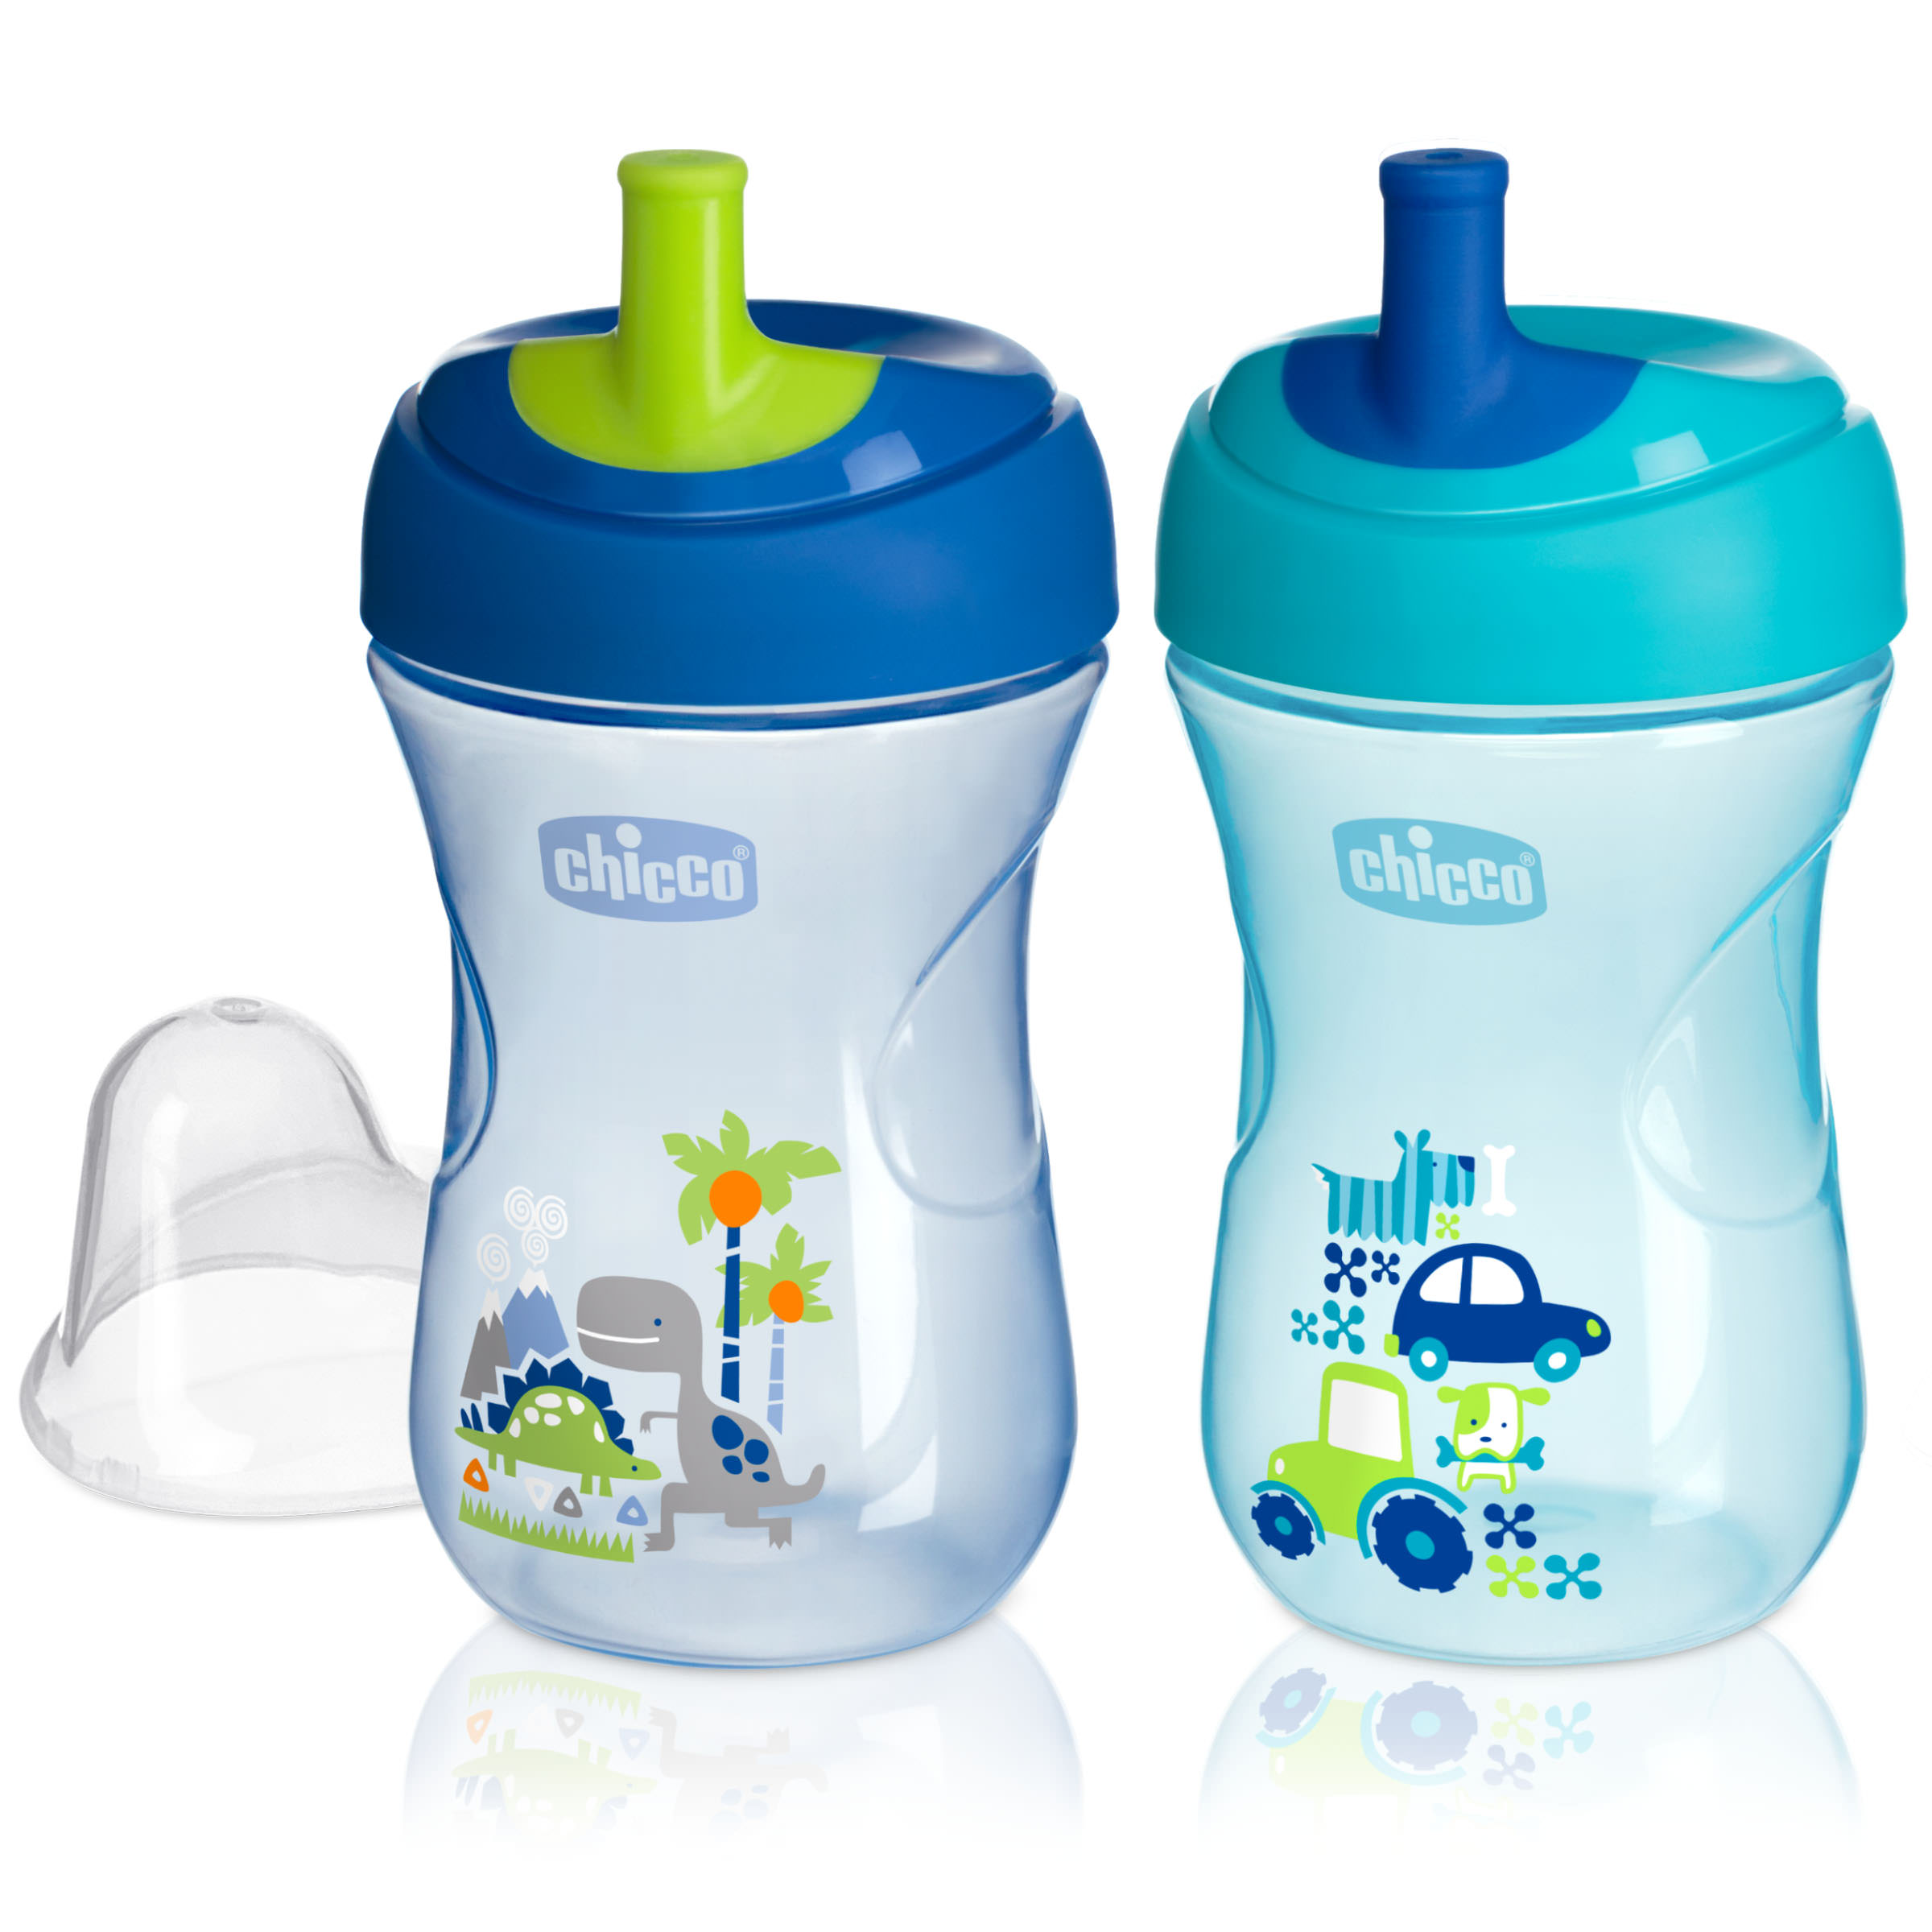 Chicco First Straw Trainer No Spill Sippy Cup 9M+, 9oz Blue Teal 2-Pack by Chicco